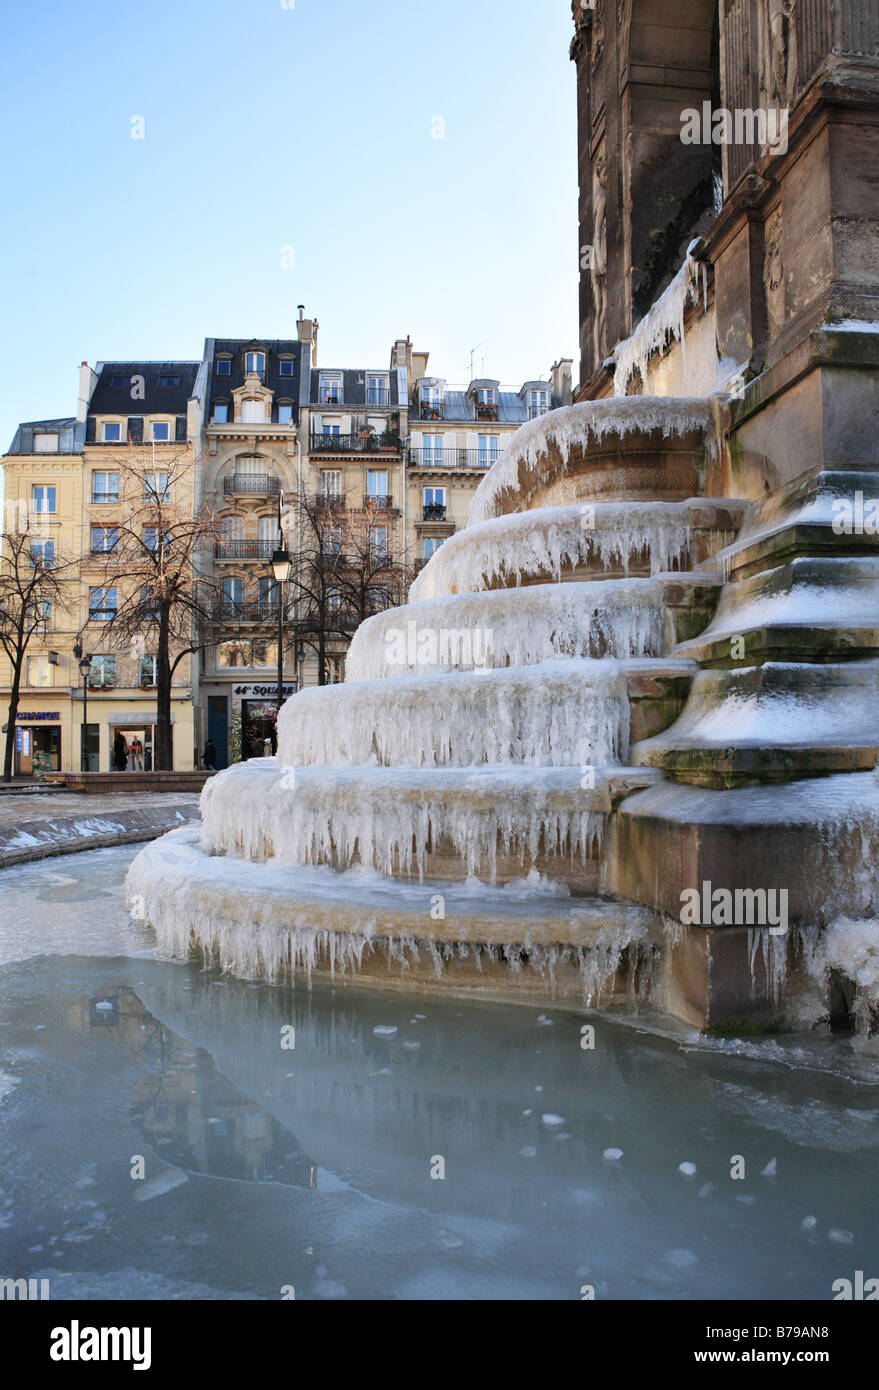 Frozen water on the Fountain of the Innocents, near Les Halles, Paris, France, Europe Stock Photo